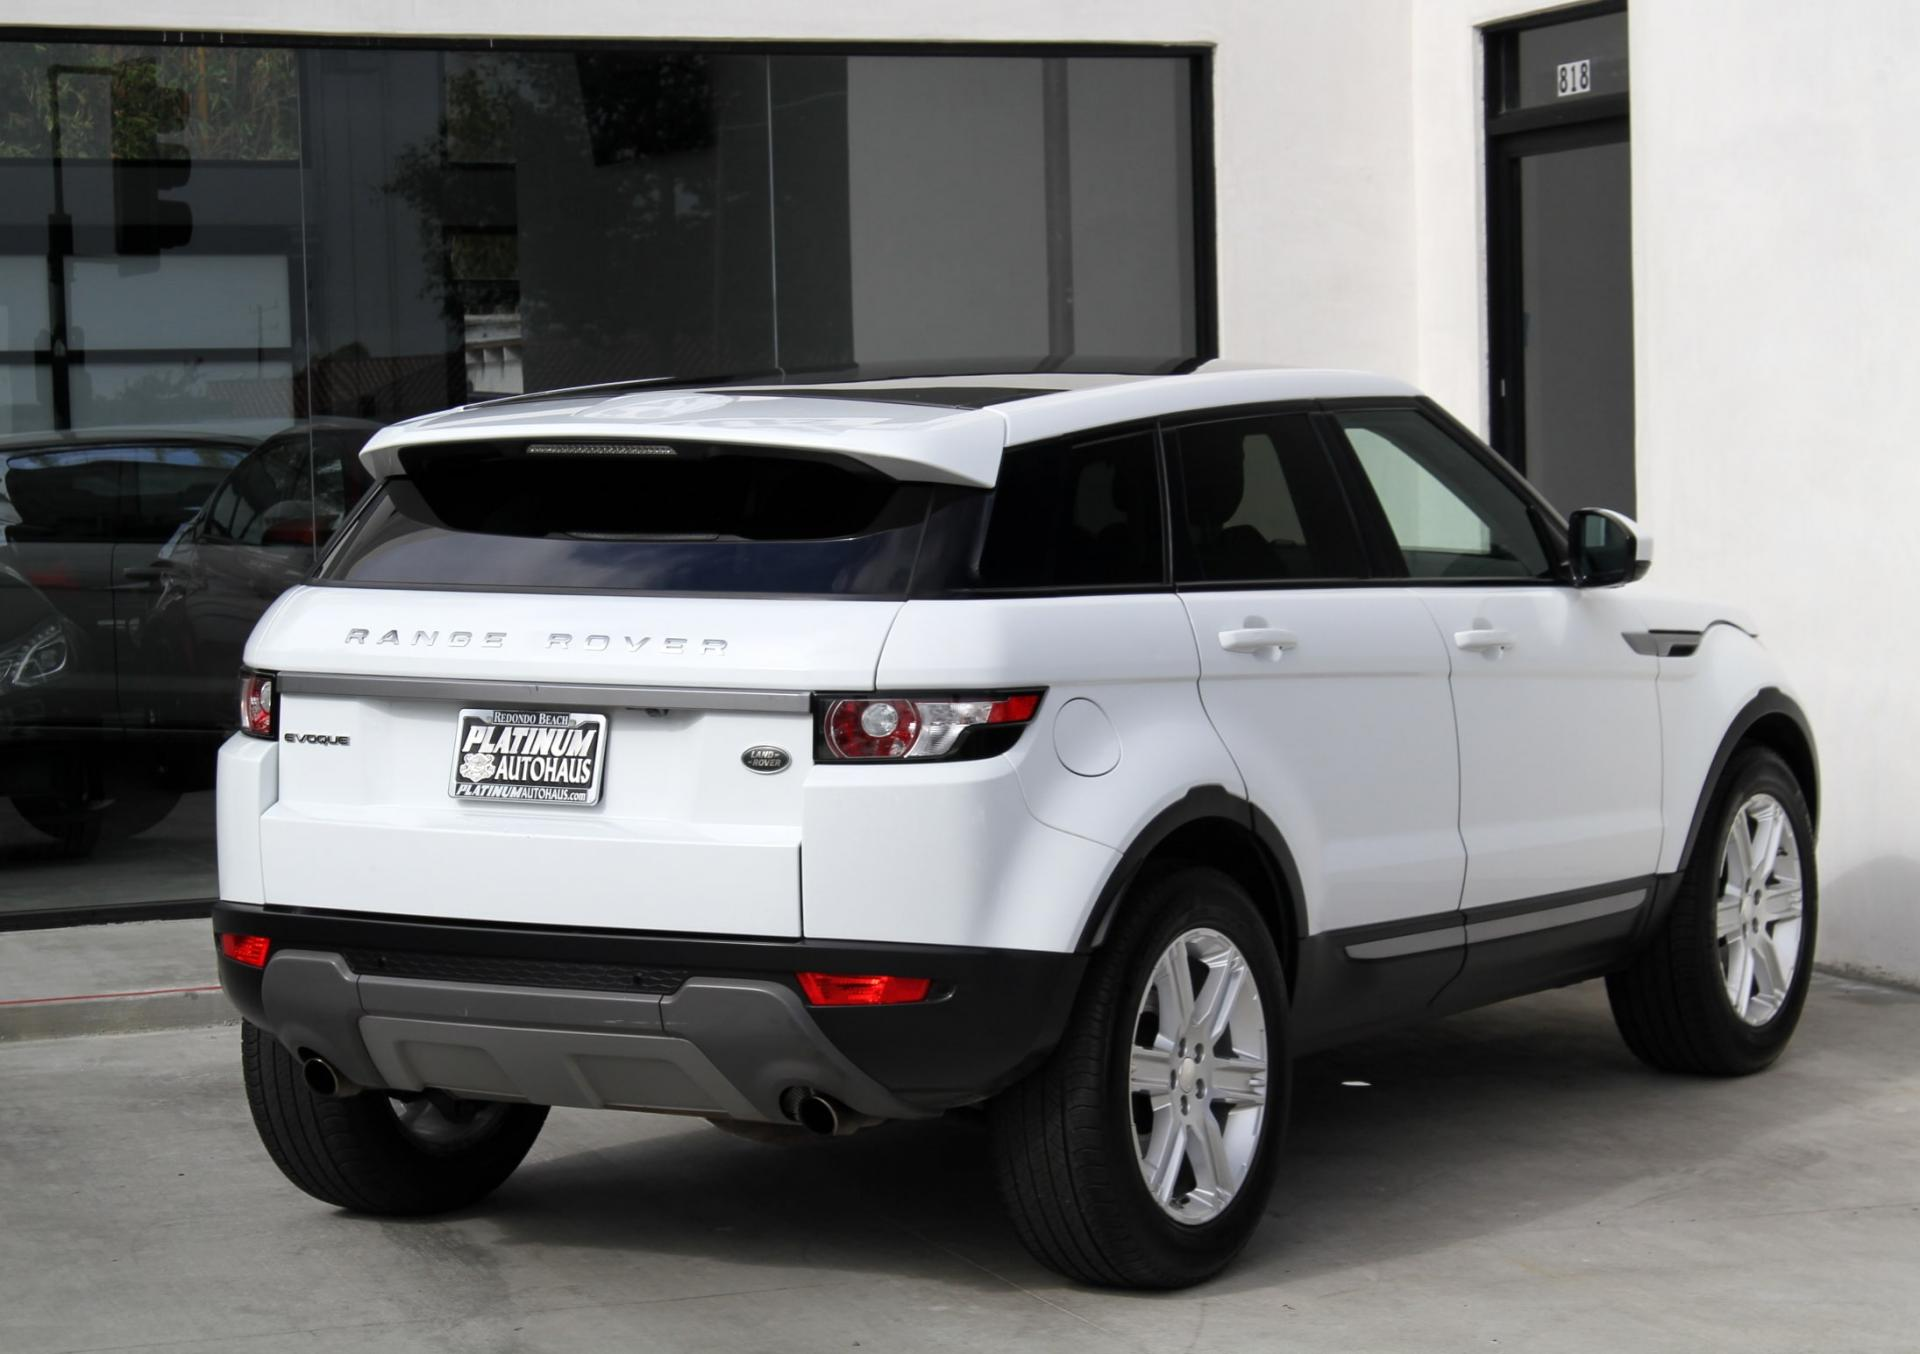 2014 land rover range rover evoque pure plus stock 5881 for sale near redondo beach ca ca. Black Bedroom Furniture Sets. Home Design Ideas